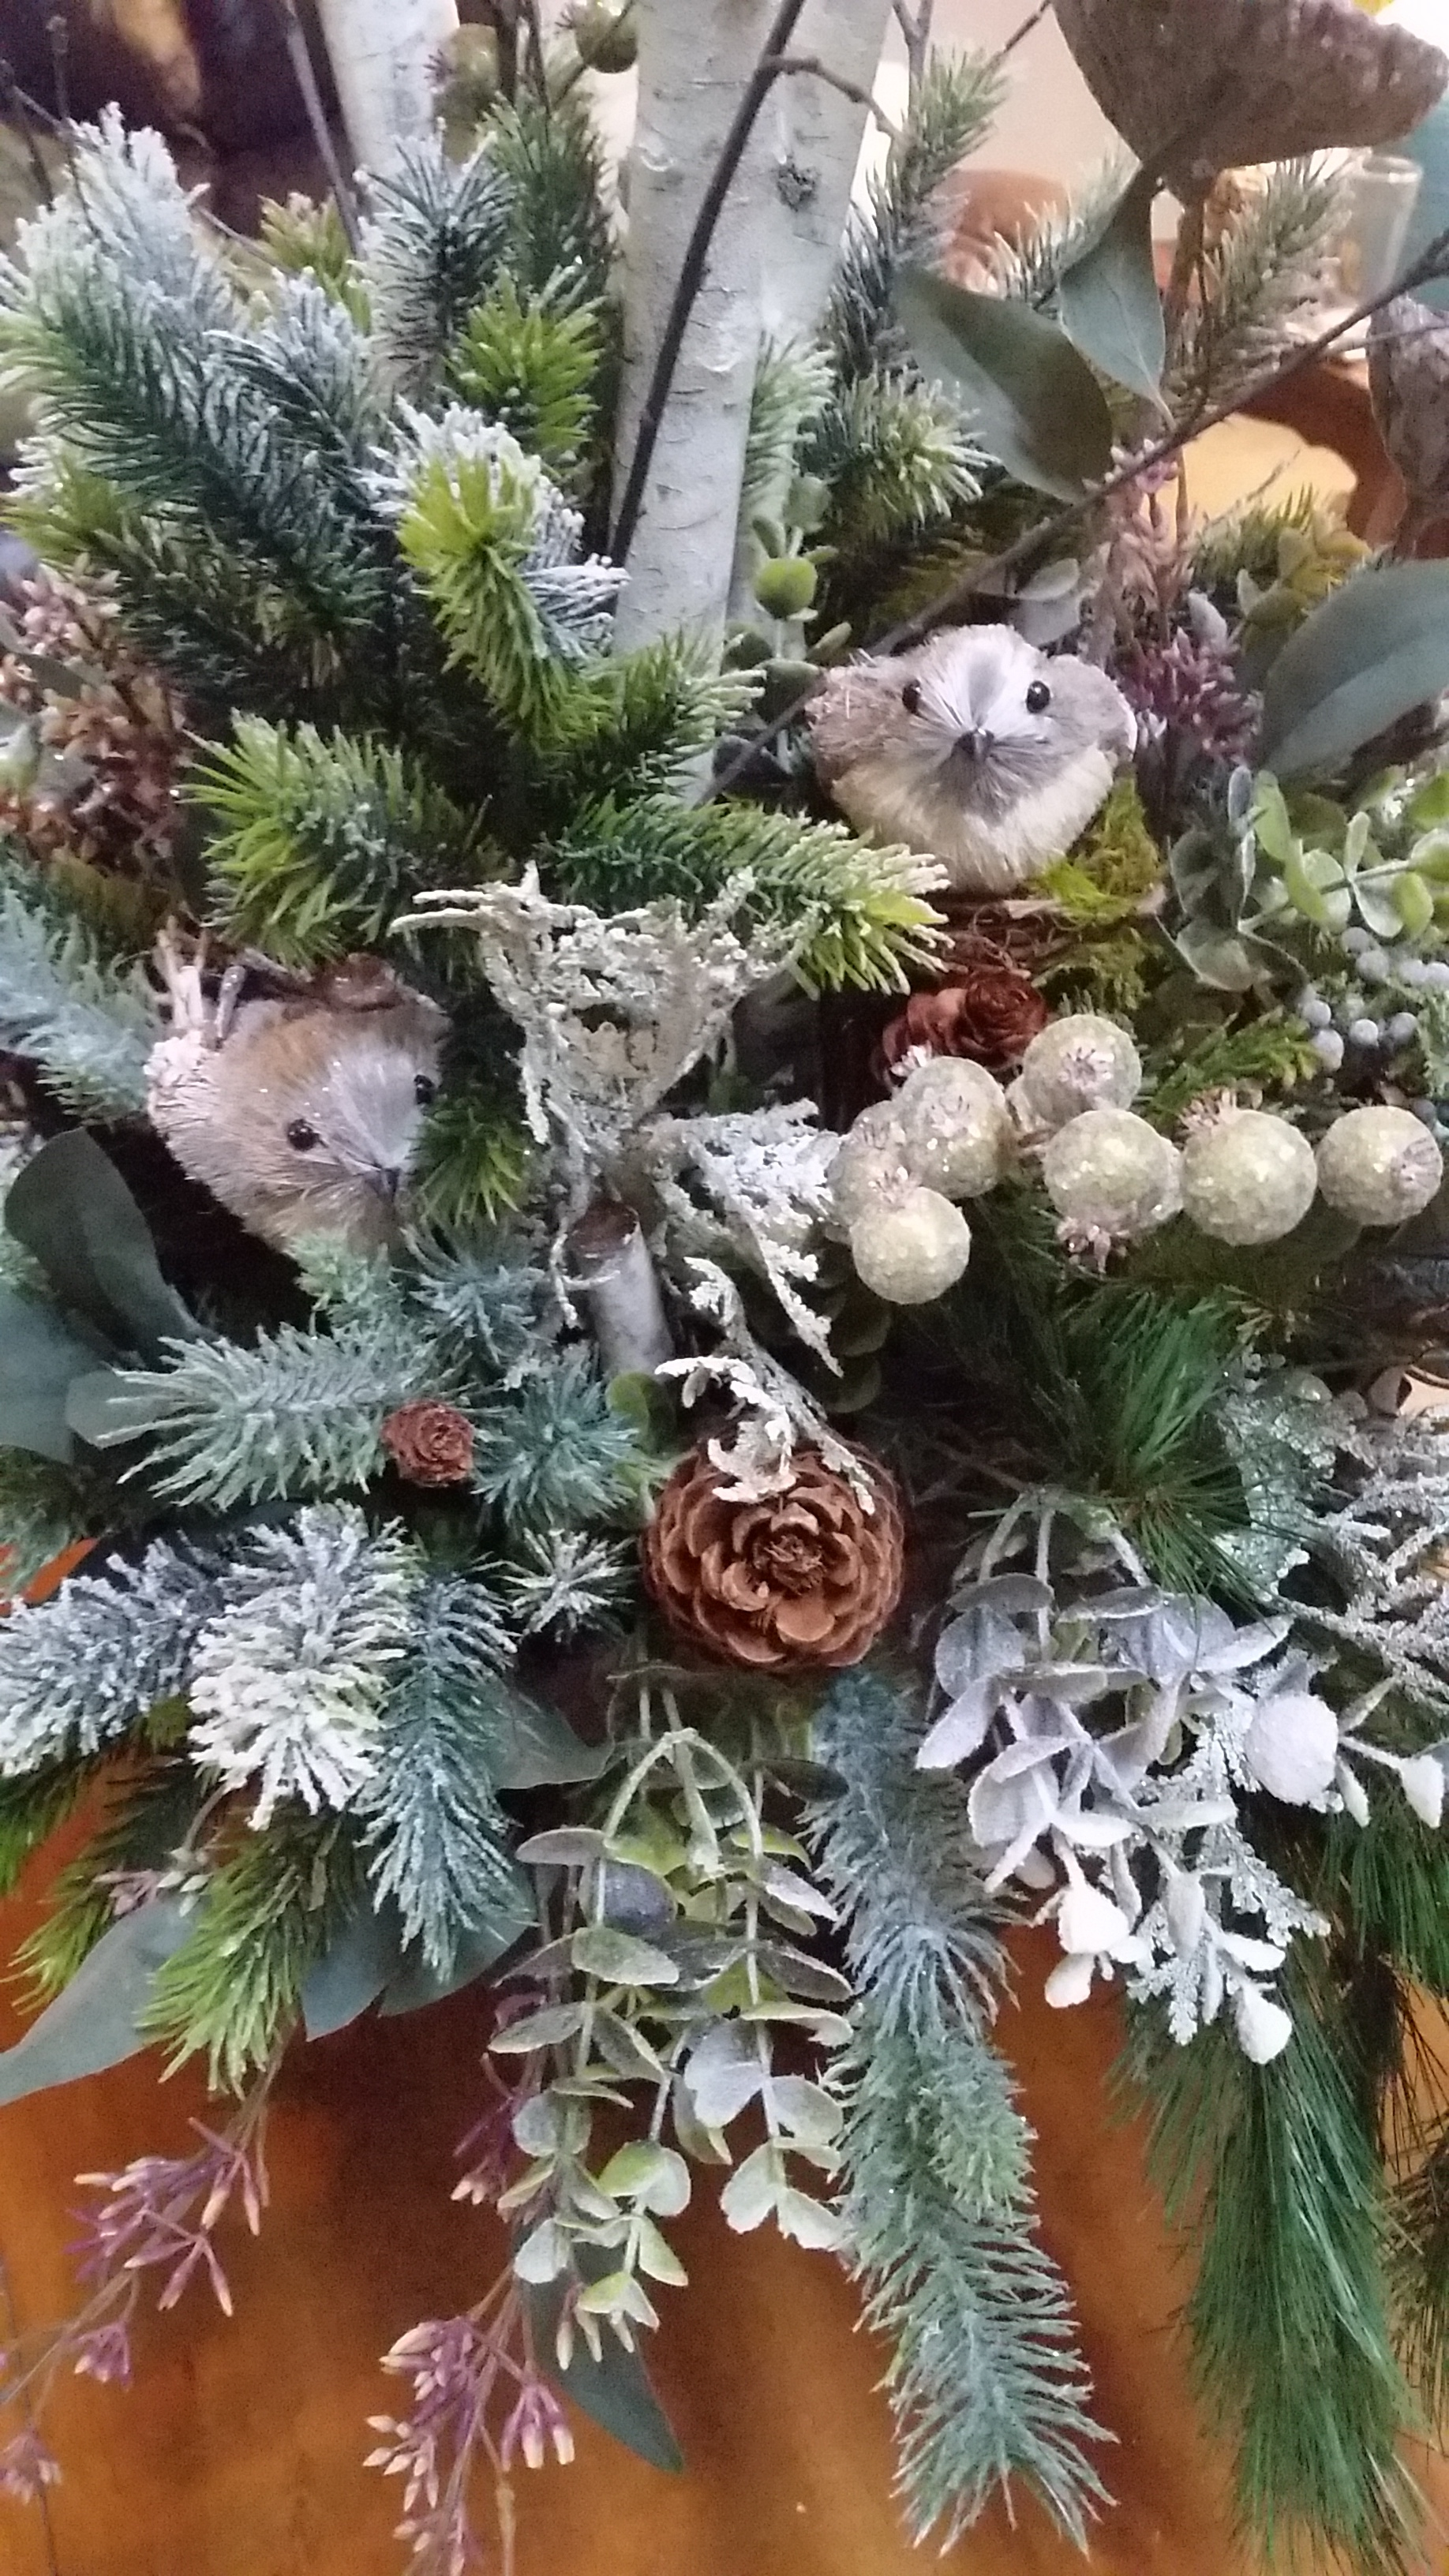 Detail in Silk Winter Entry Arrangement. Used for Holidays and Winter Months